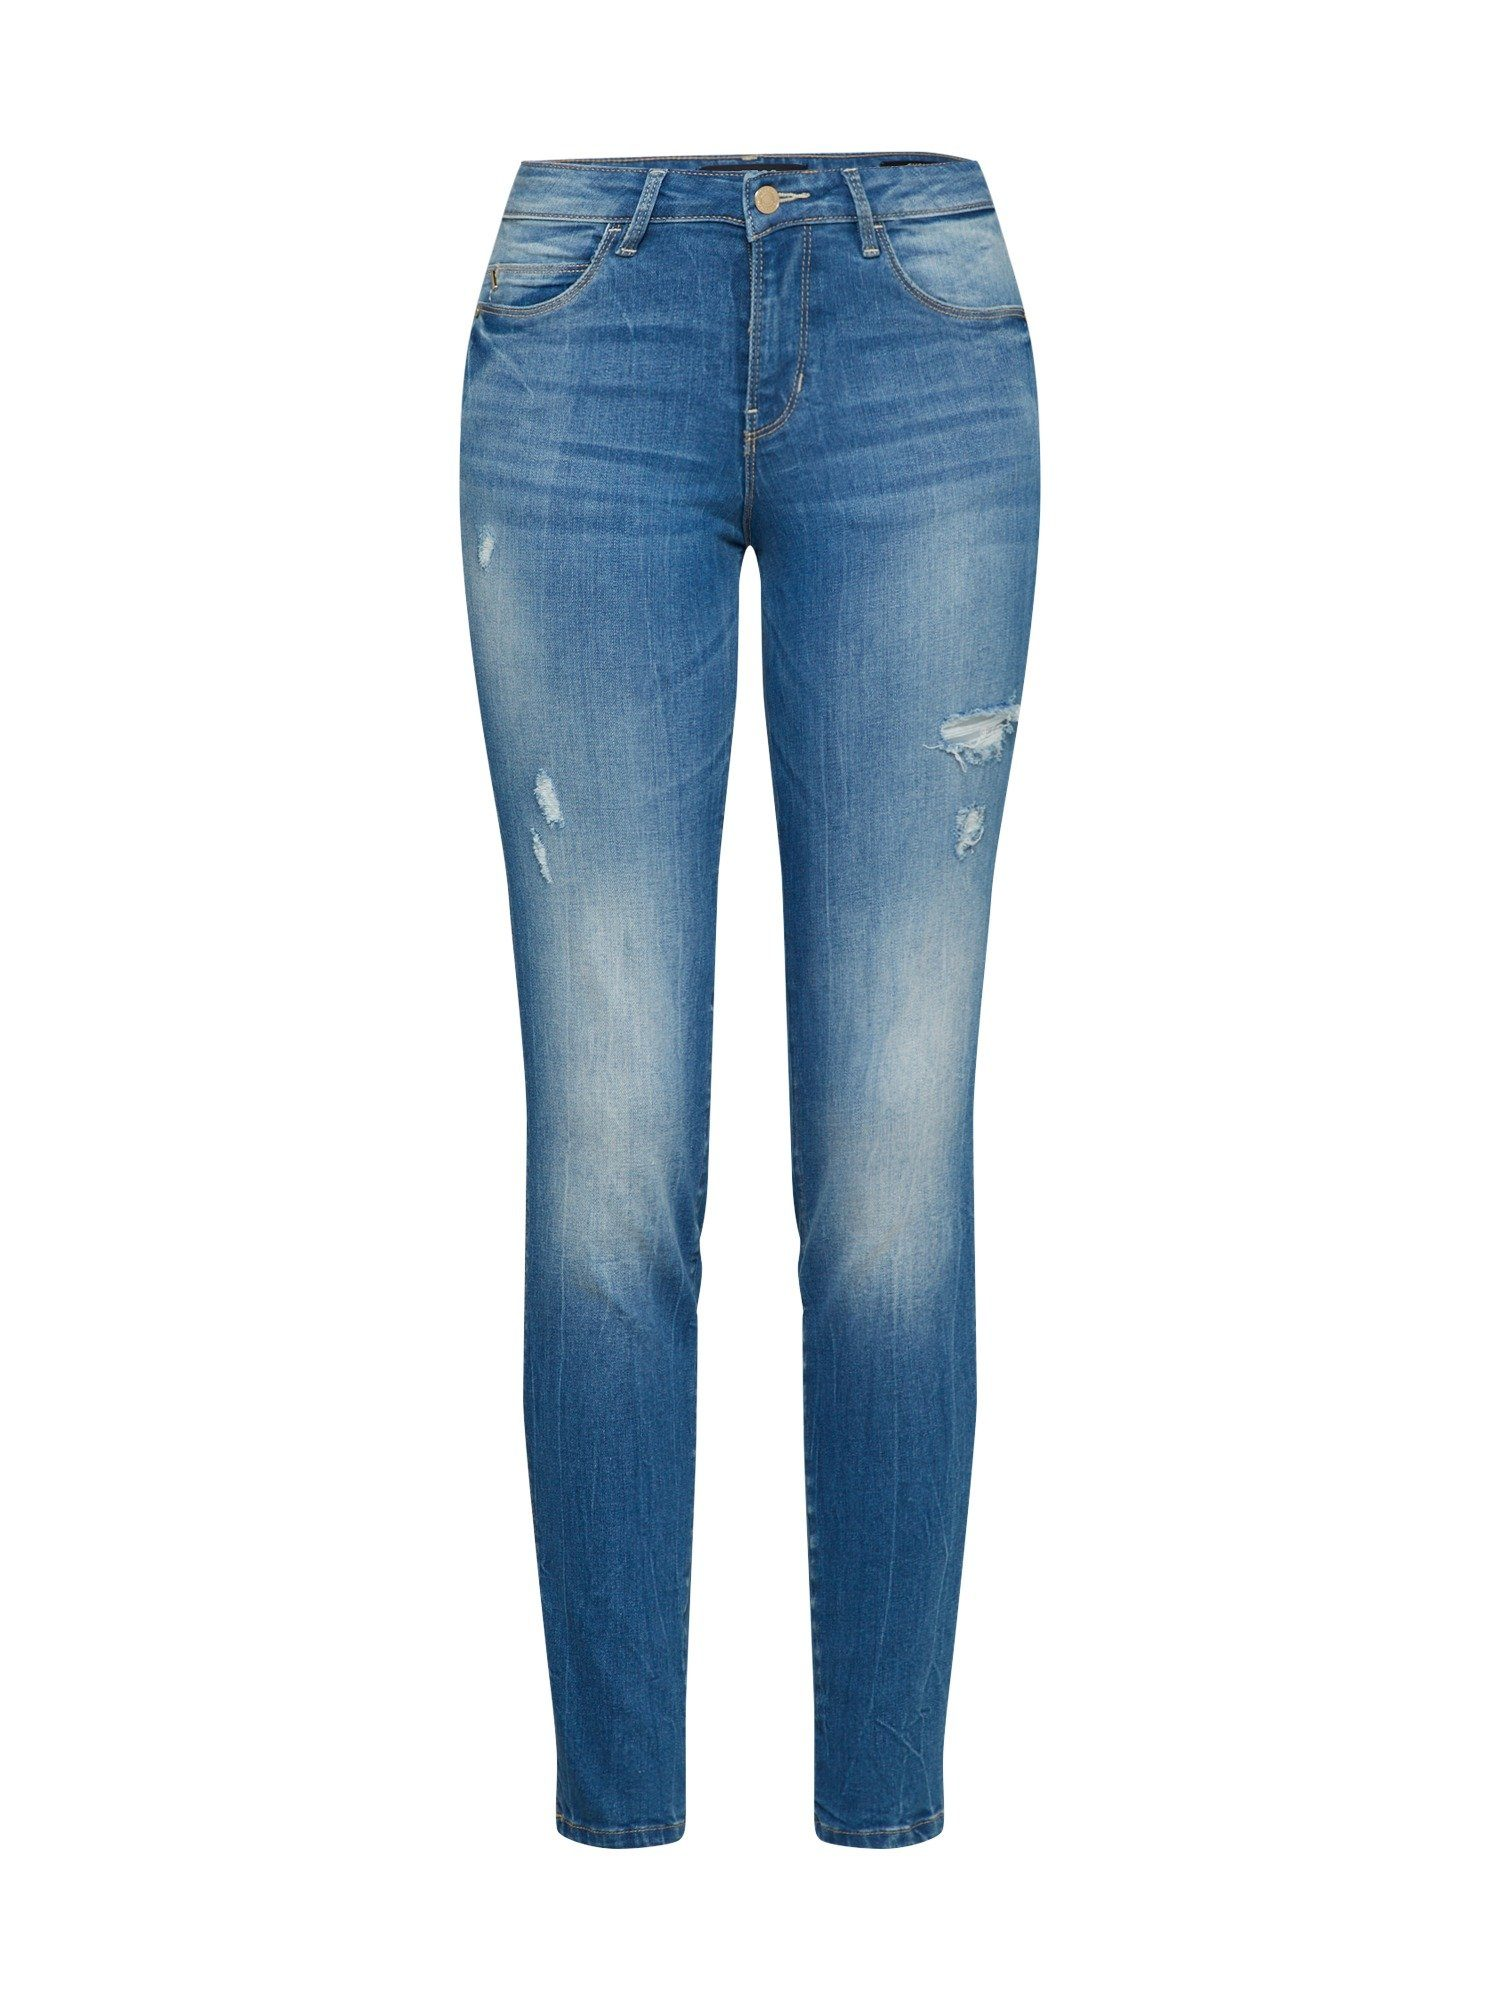 Guess Skinny fit Jeans »CURVE X«, Waschungseffekte online kaufen | OTTO